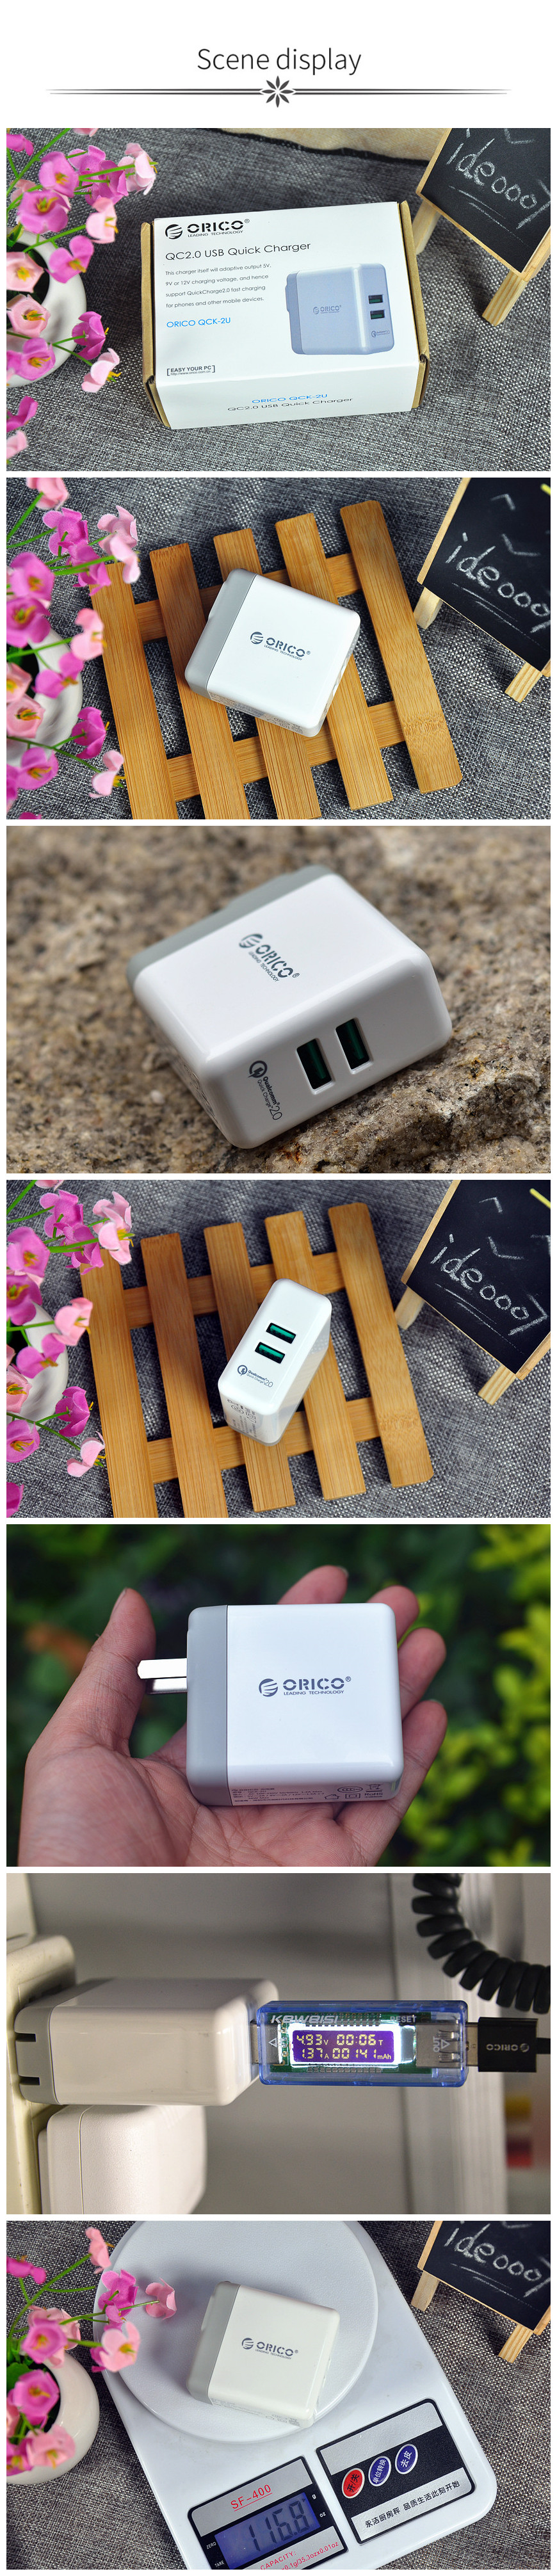 ORICO USB Quick Charger QC2.0 Dual Ports Wall Charger 36W Mobile Phone Charger for Apple Samsung Xiaomi Huawei Portable White